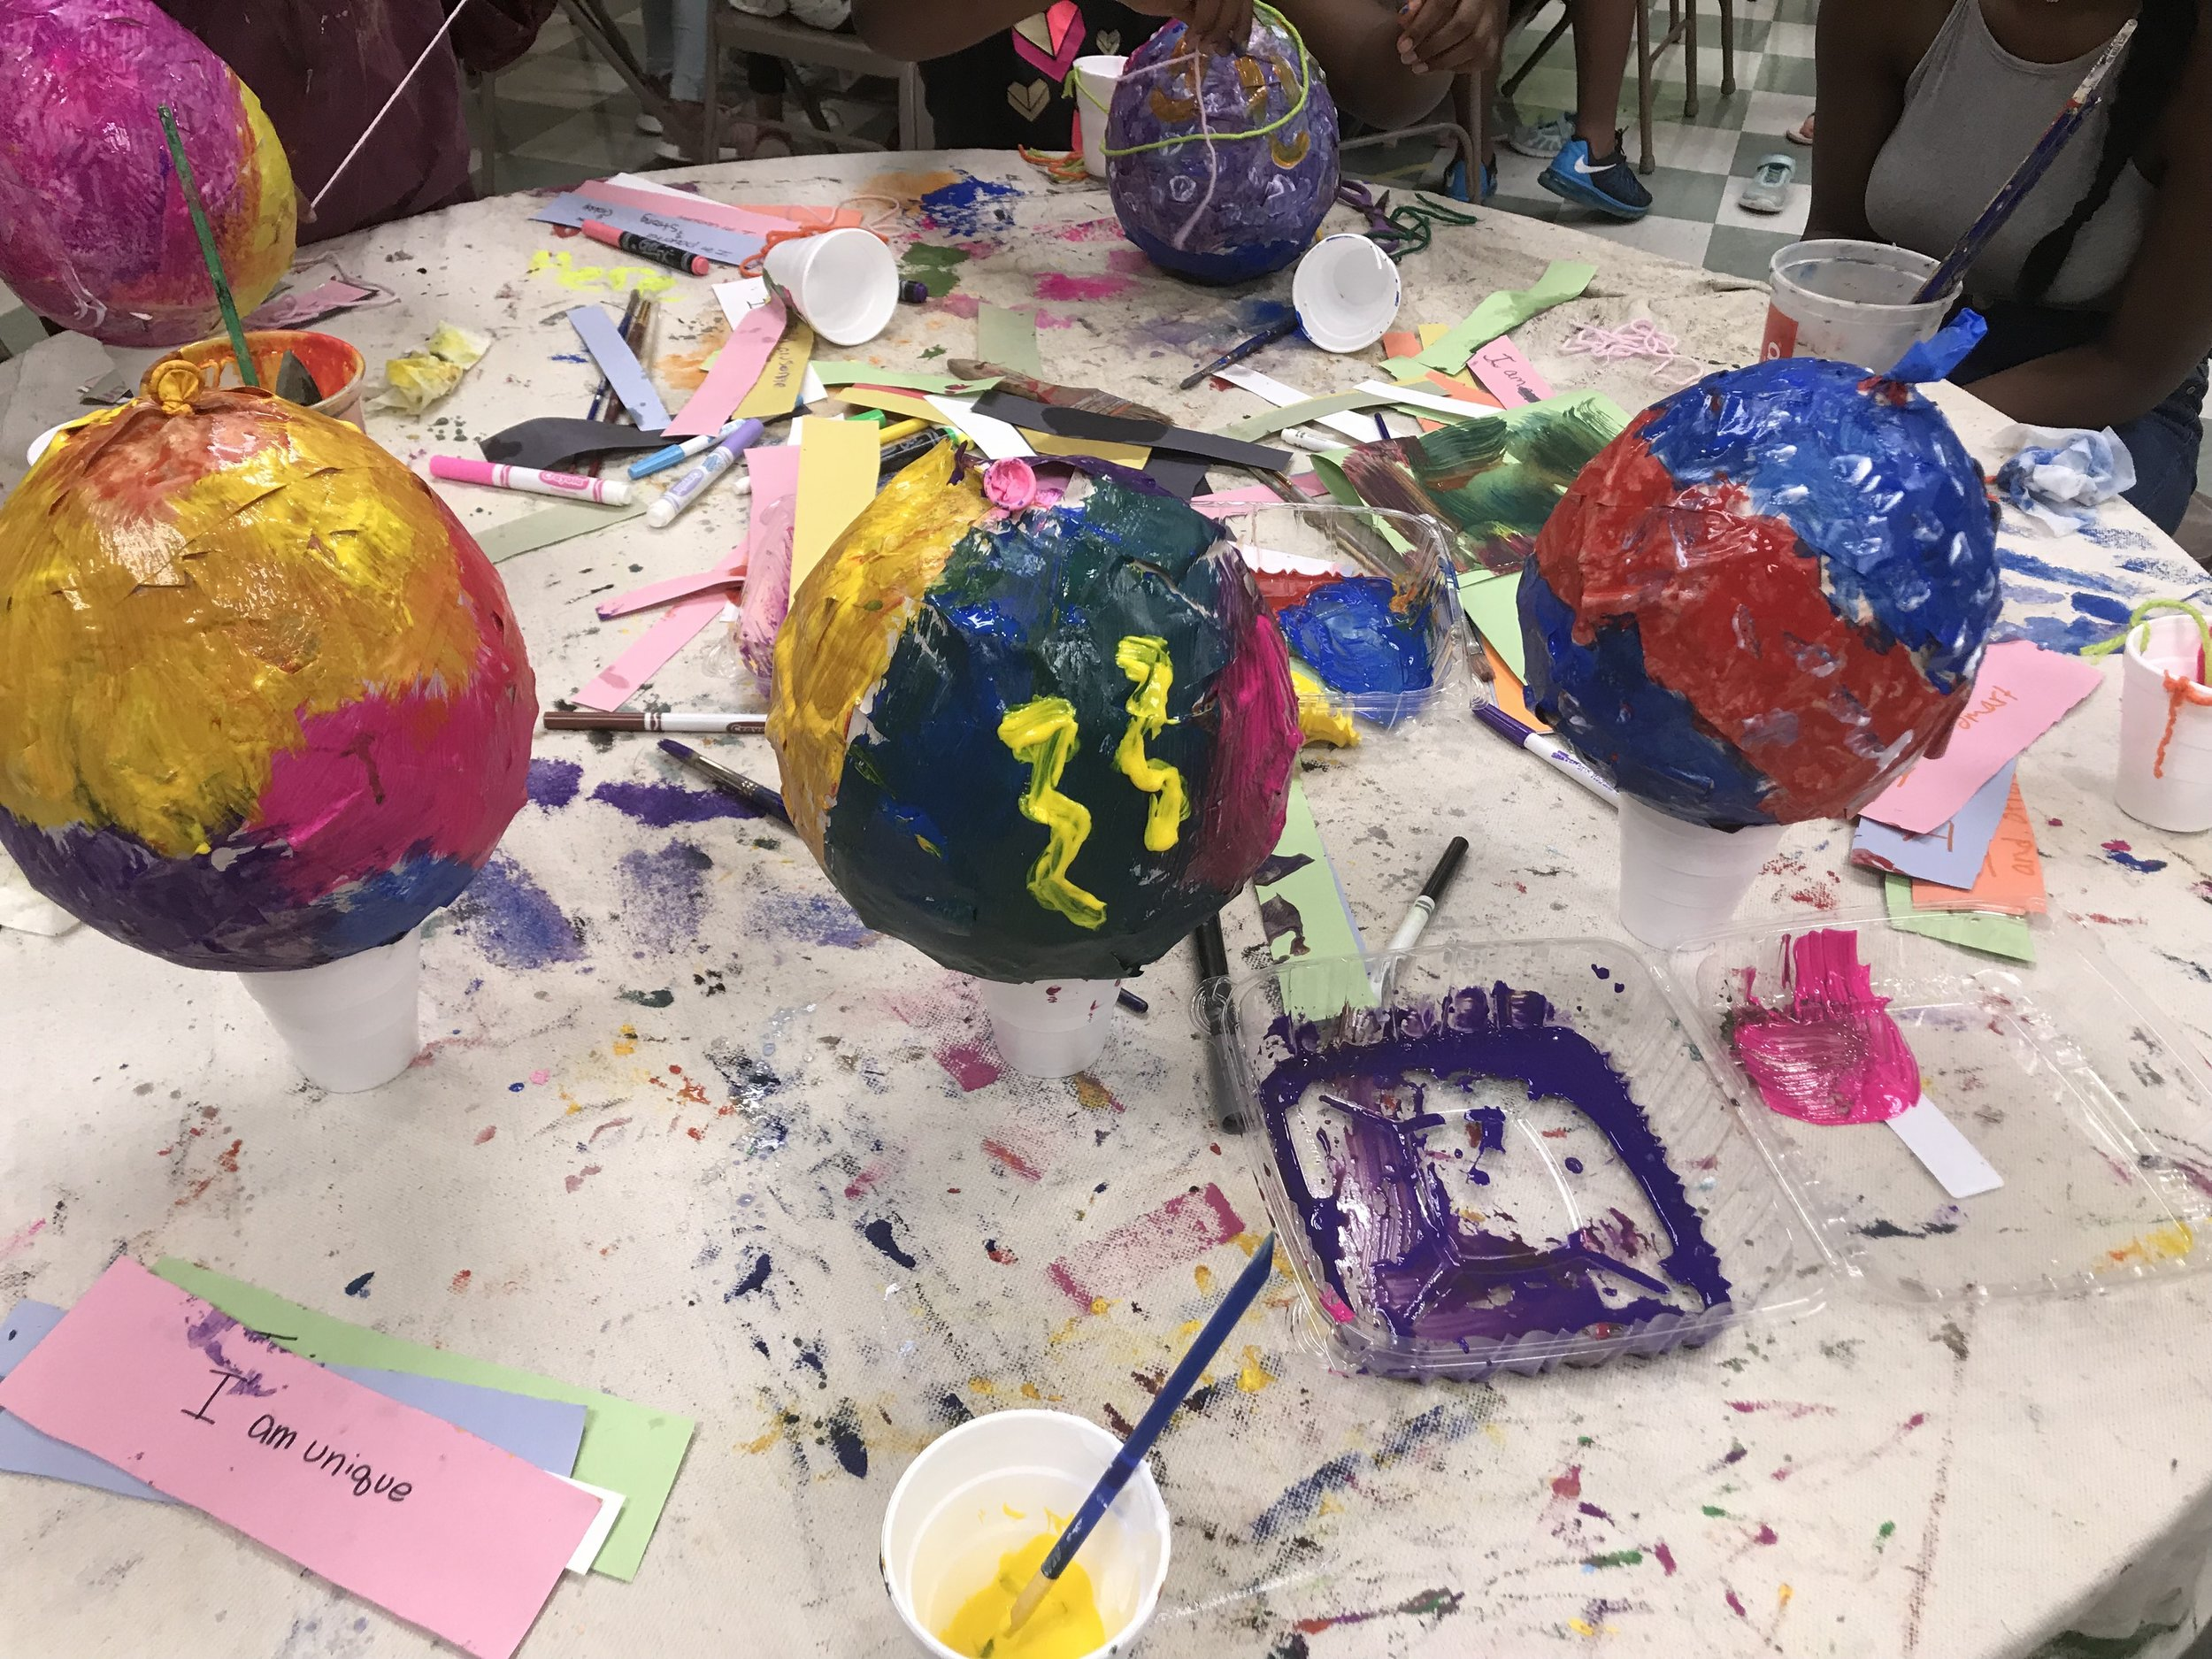 Self affirmation paper mache hot air balloon project with Paint Love and Camp Peace